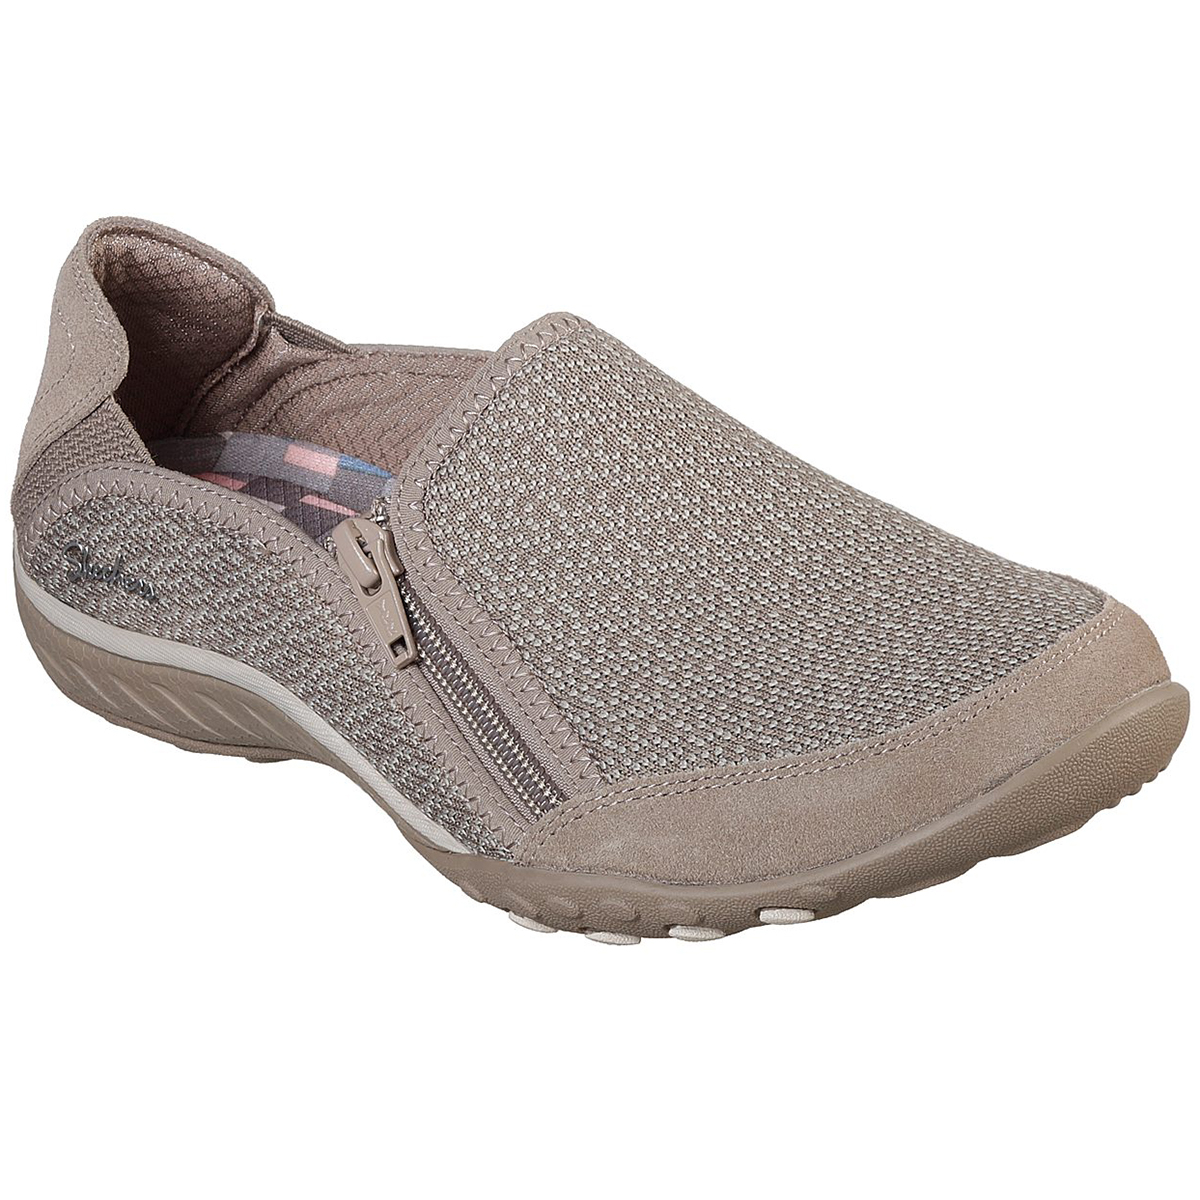 Skechers Women's Relaxed Fit: Breathe Easy - Quiet-Tude Sneakers - Brown, 6.5